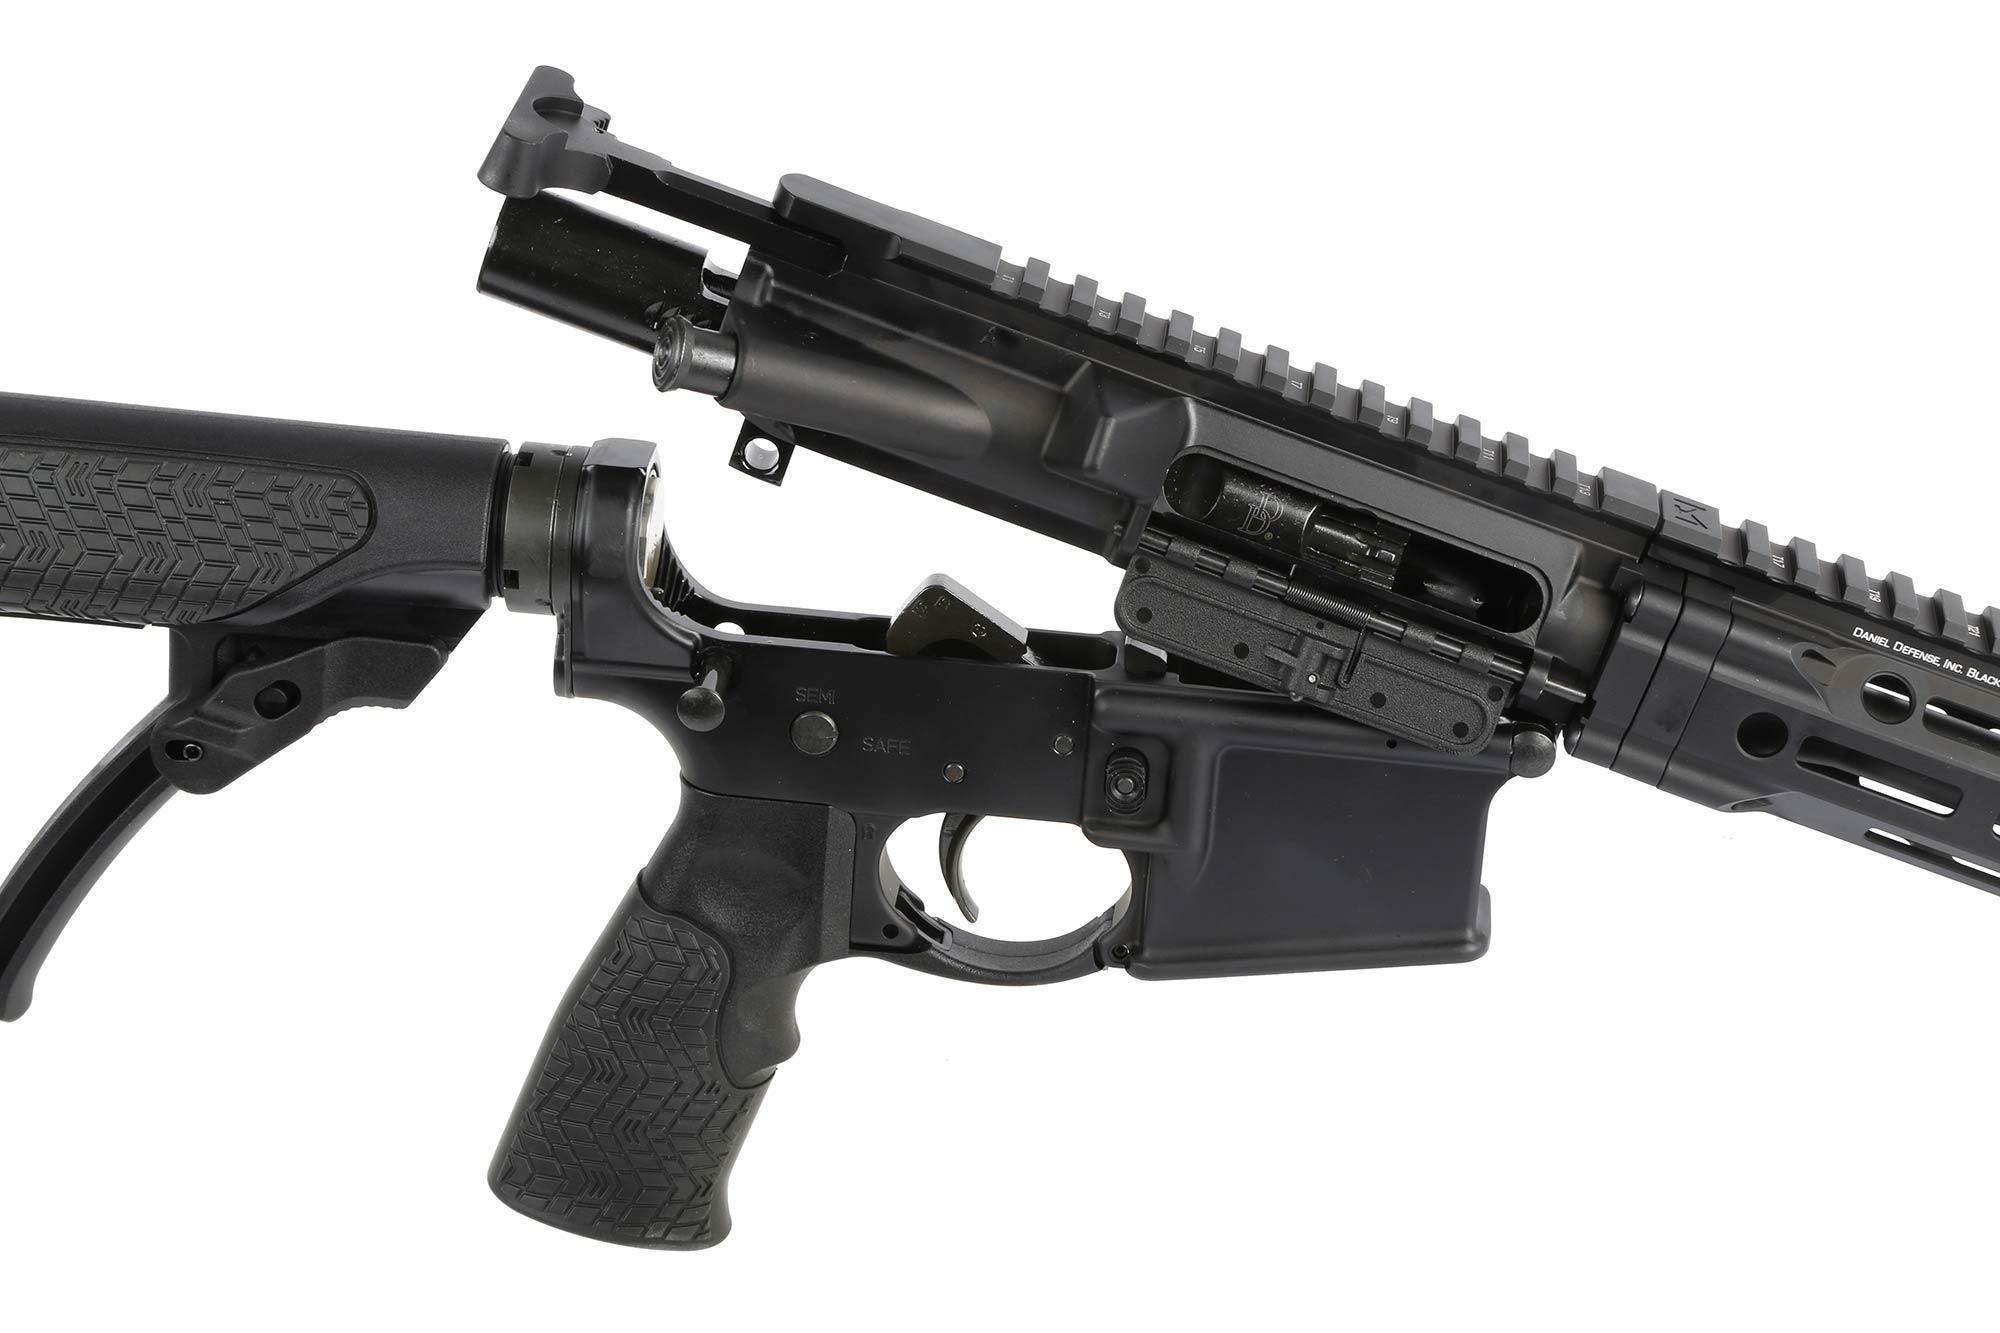 The Daniel Defense DDM4 v7 ar15 carbine features a mil-spec trigger